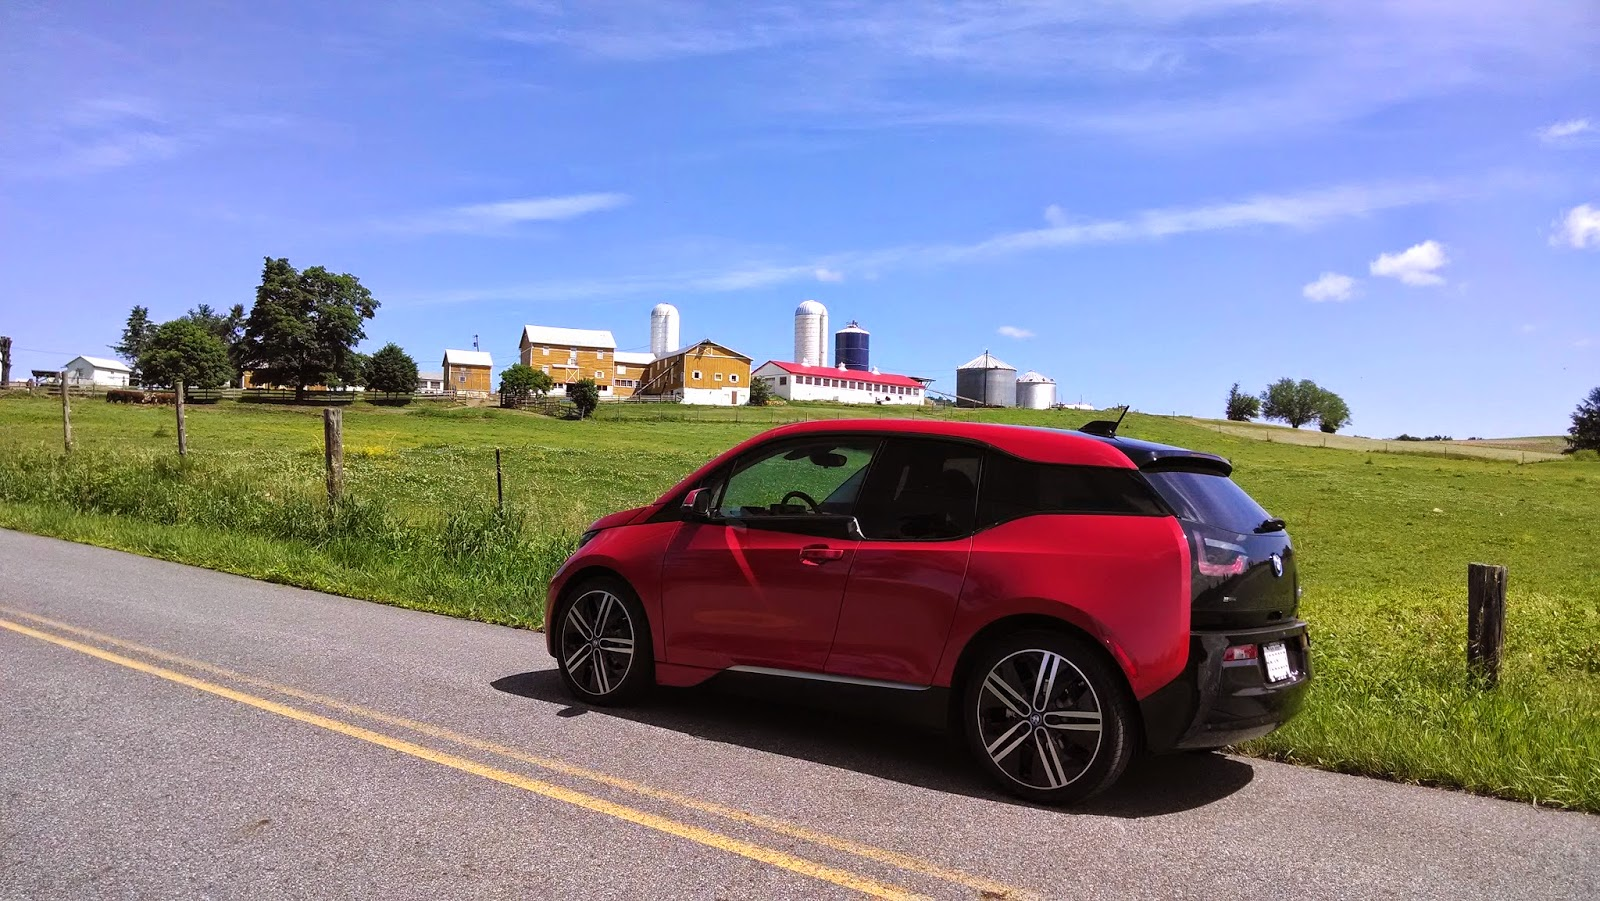 sylvania bmw the town frankfurt car wraps pulls associated automotive home enlarge off our blade electric germany compact press